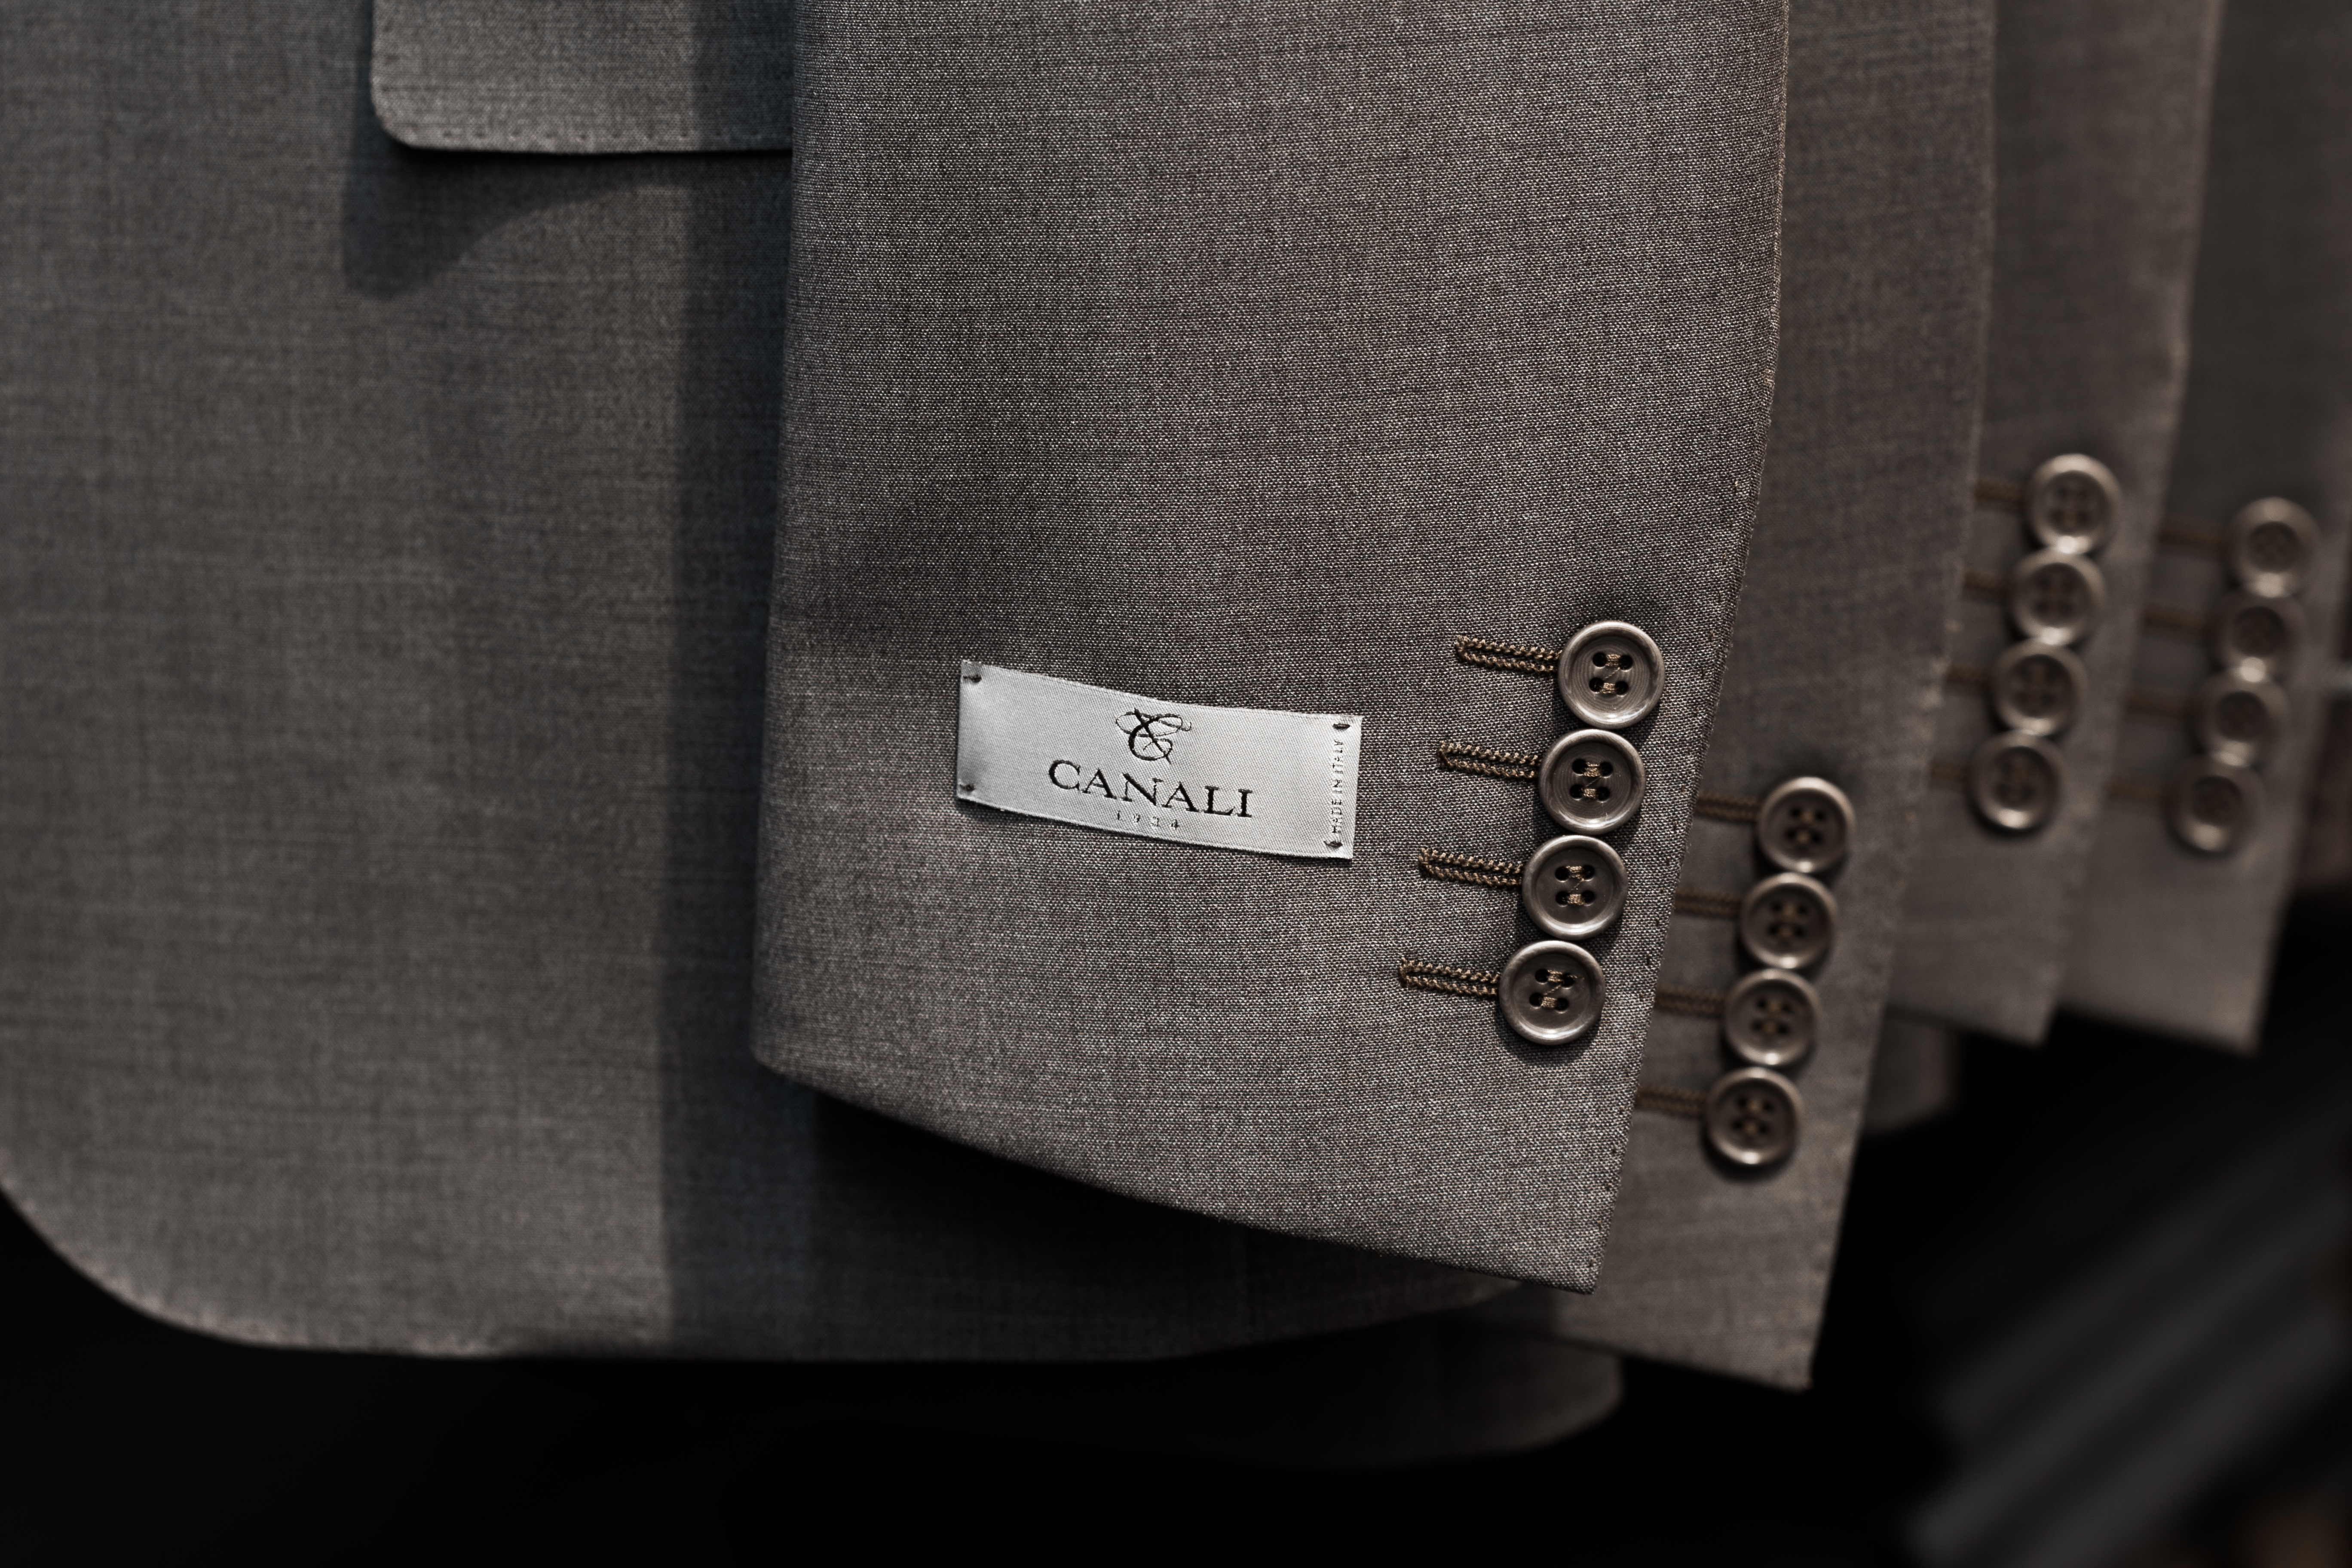 Canali | Made in Italy and stocked by Richard Gelding London